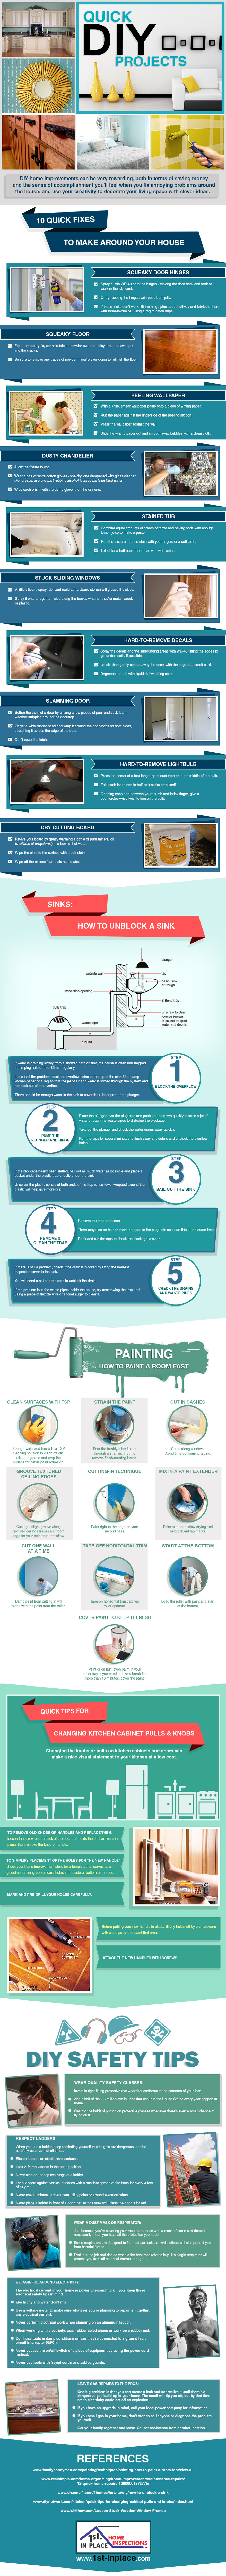 Add value to your home with these easy and quick DIY projects for your home. From painting, to stain removal to fixing floors all by yourself. Quick DIY Home Projects Infographic via tipsaholic.com #diy #projects #home #howto